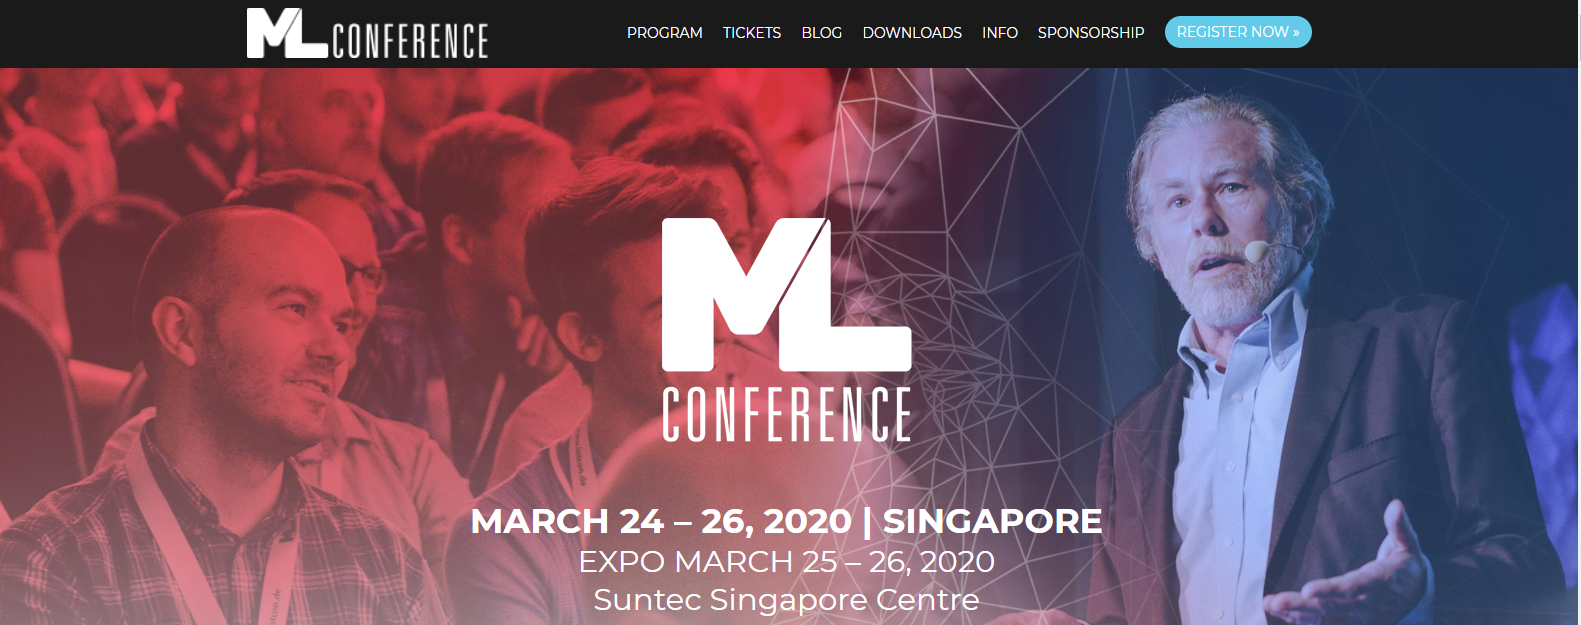 ml conference